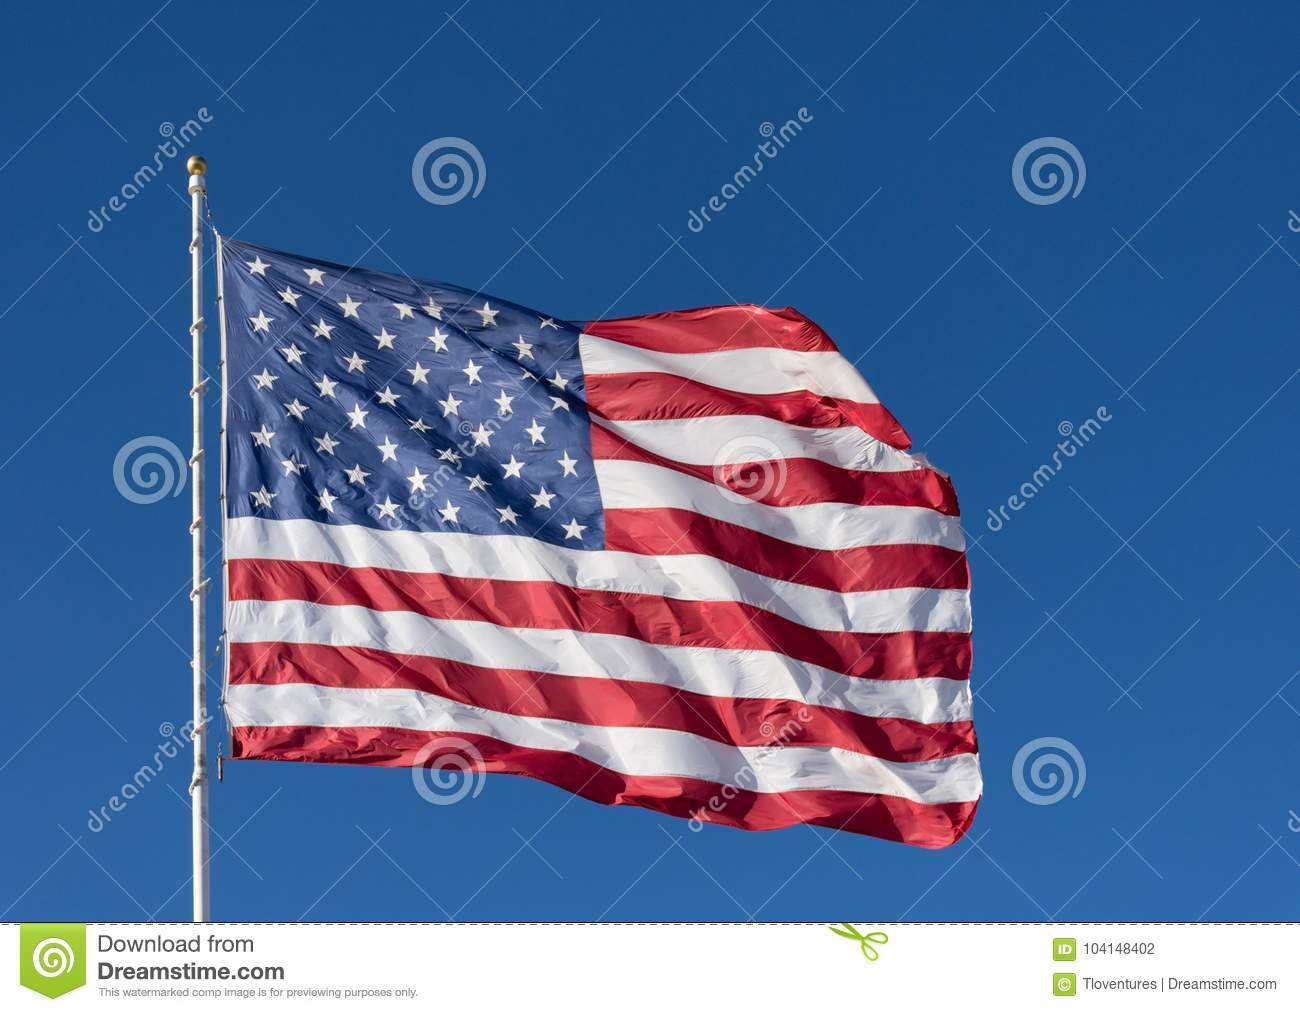 cd3f4331e57 Royalty-Free Stock Photo. The stars and stripes of the American flag  against a deep blue sky.